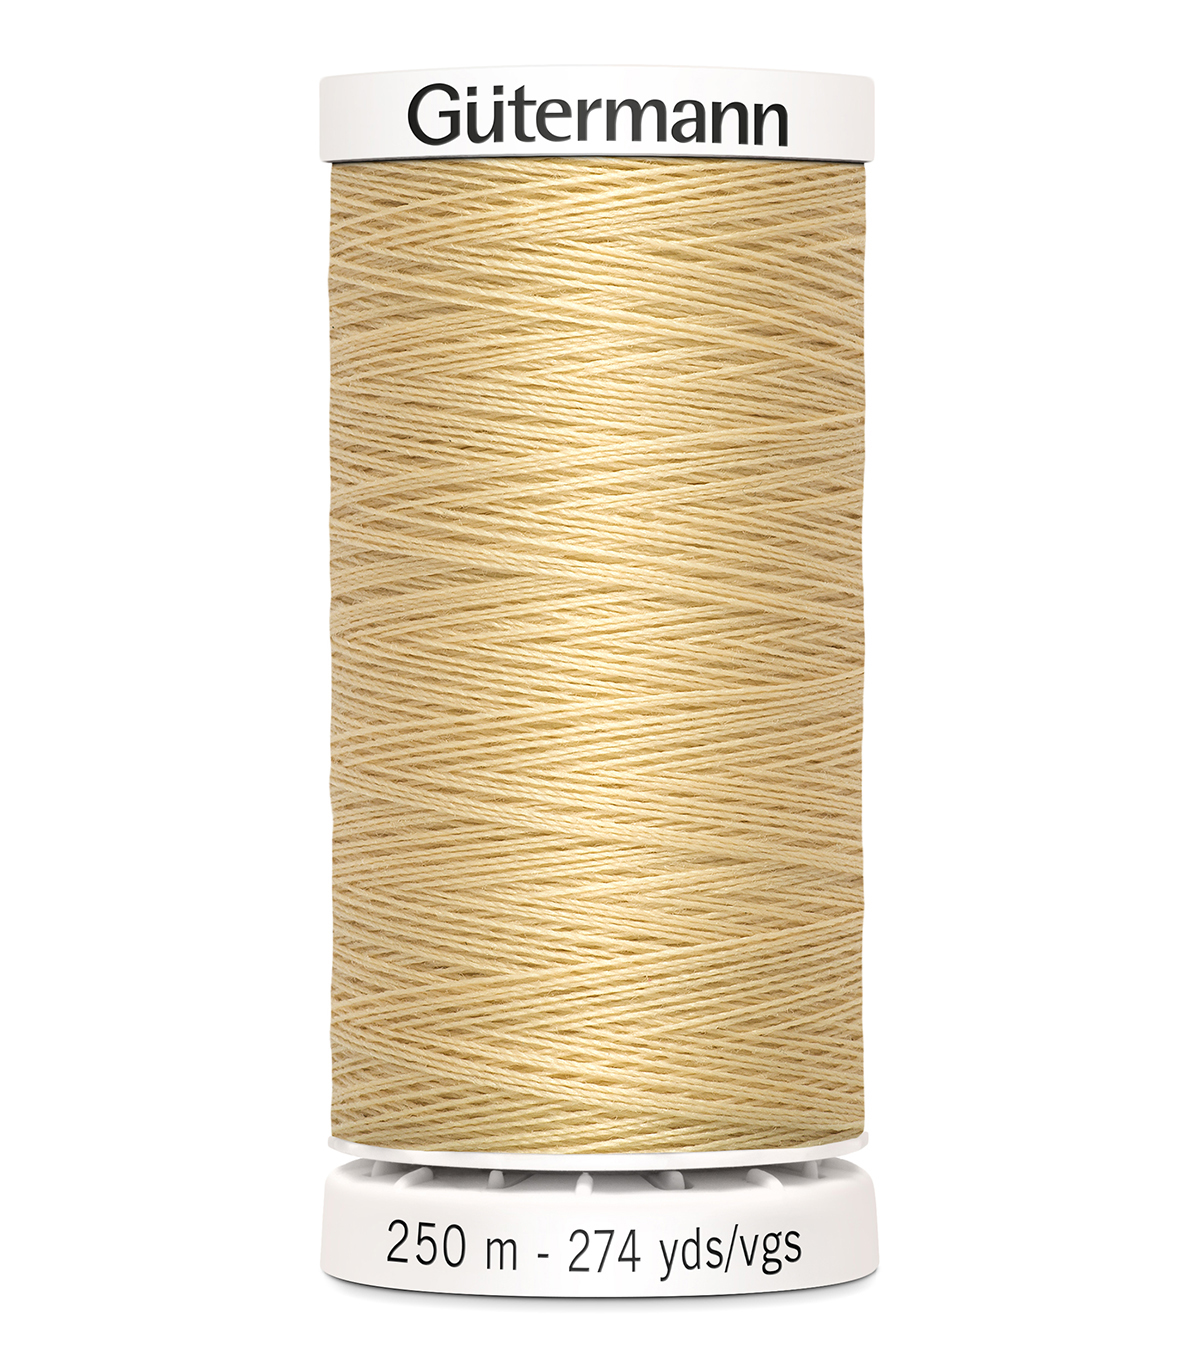 Gutermann Sew-All Thread 273Yds-(600 & 700 series) Cool Tones , Capucine #797